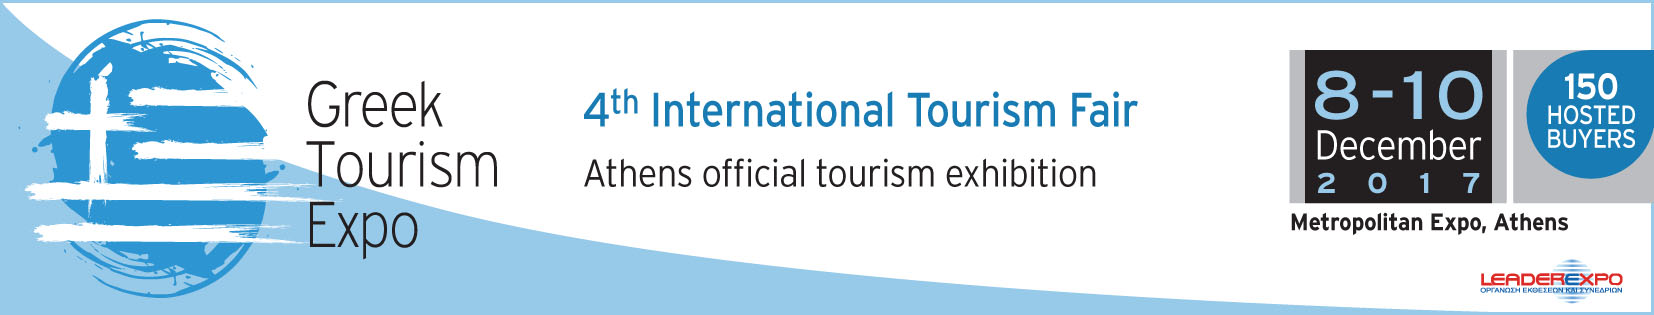 Greek Tourism Expo 2017 banner